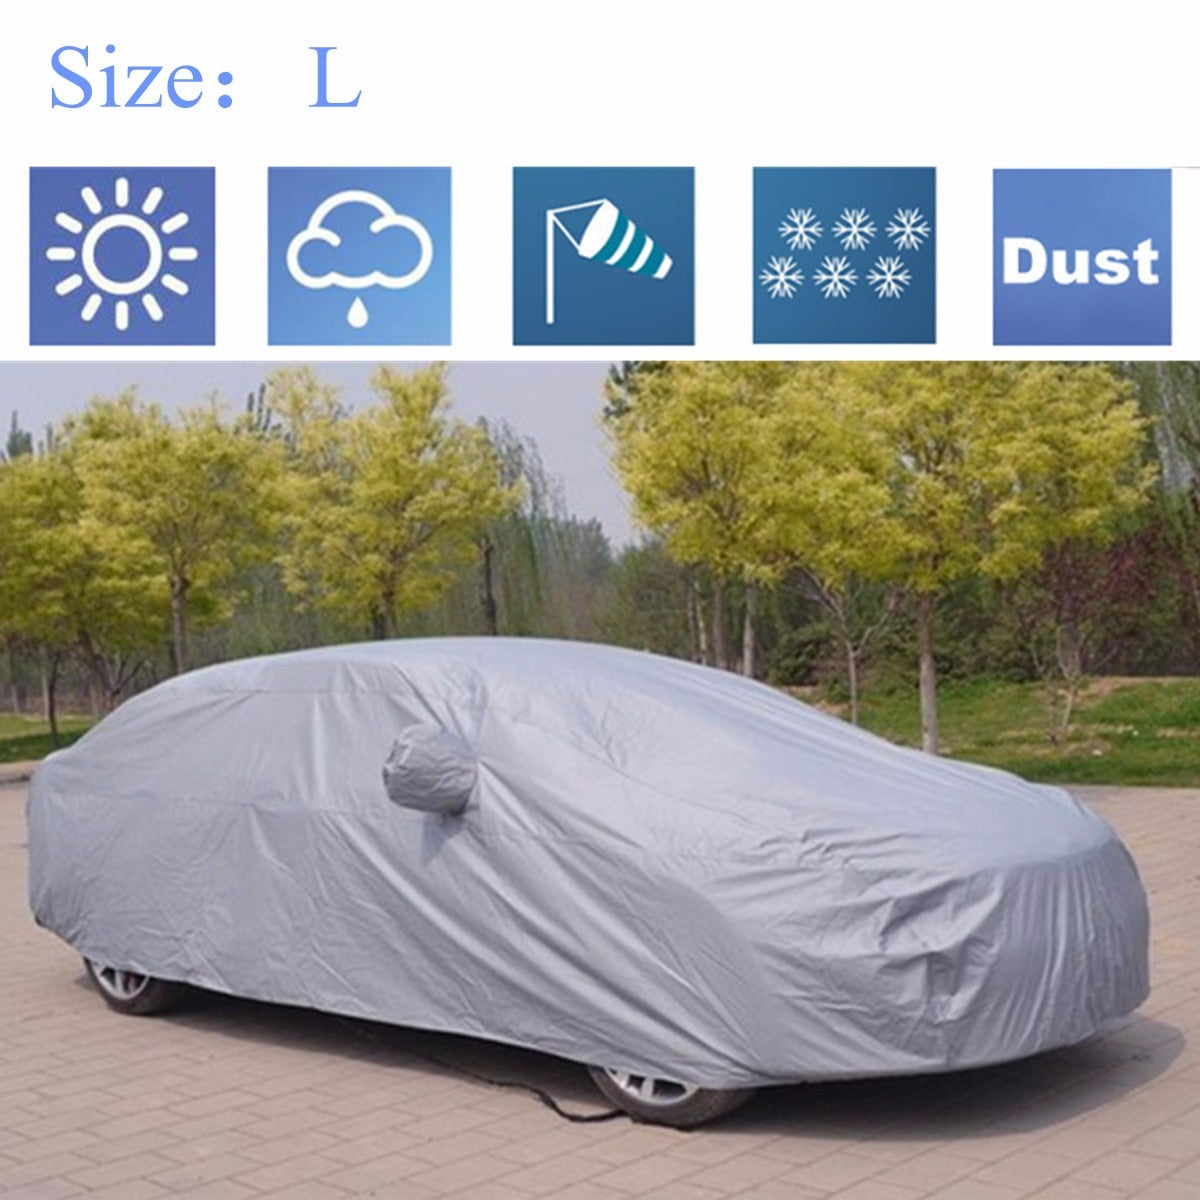 Full Car Cover Anti Rain Snow Ice Waterproof Dustproof UV Outdoor Car Covers Outdoor New Car Gadgets